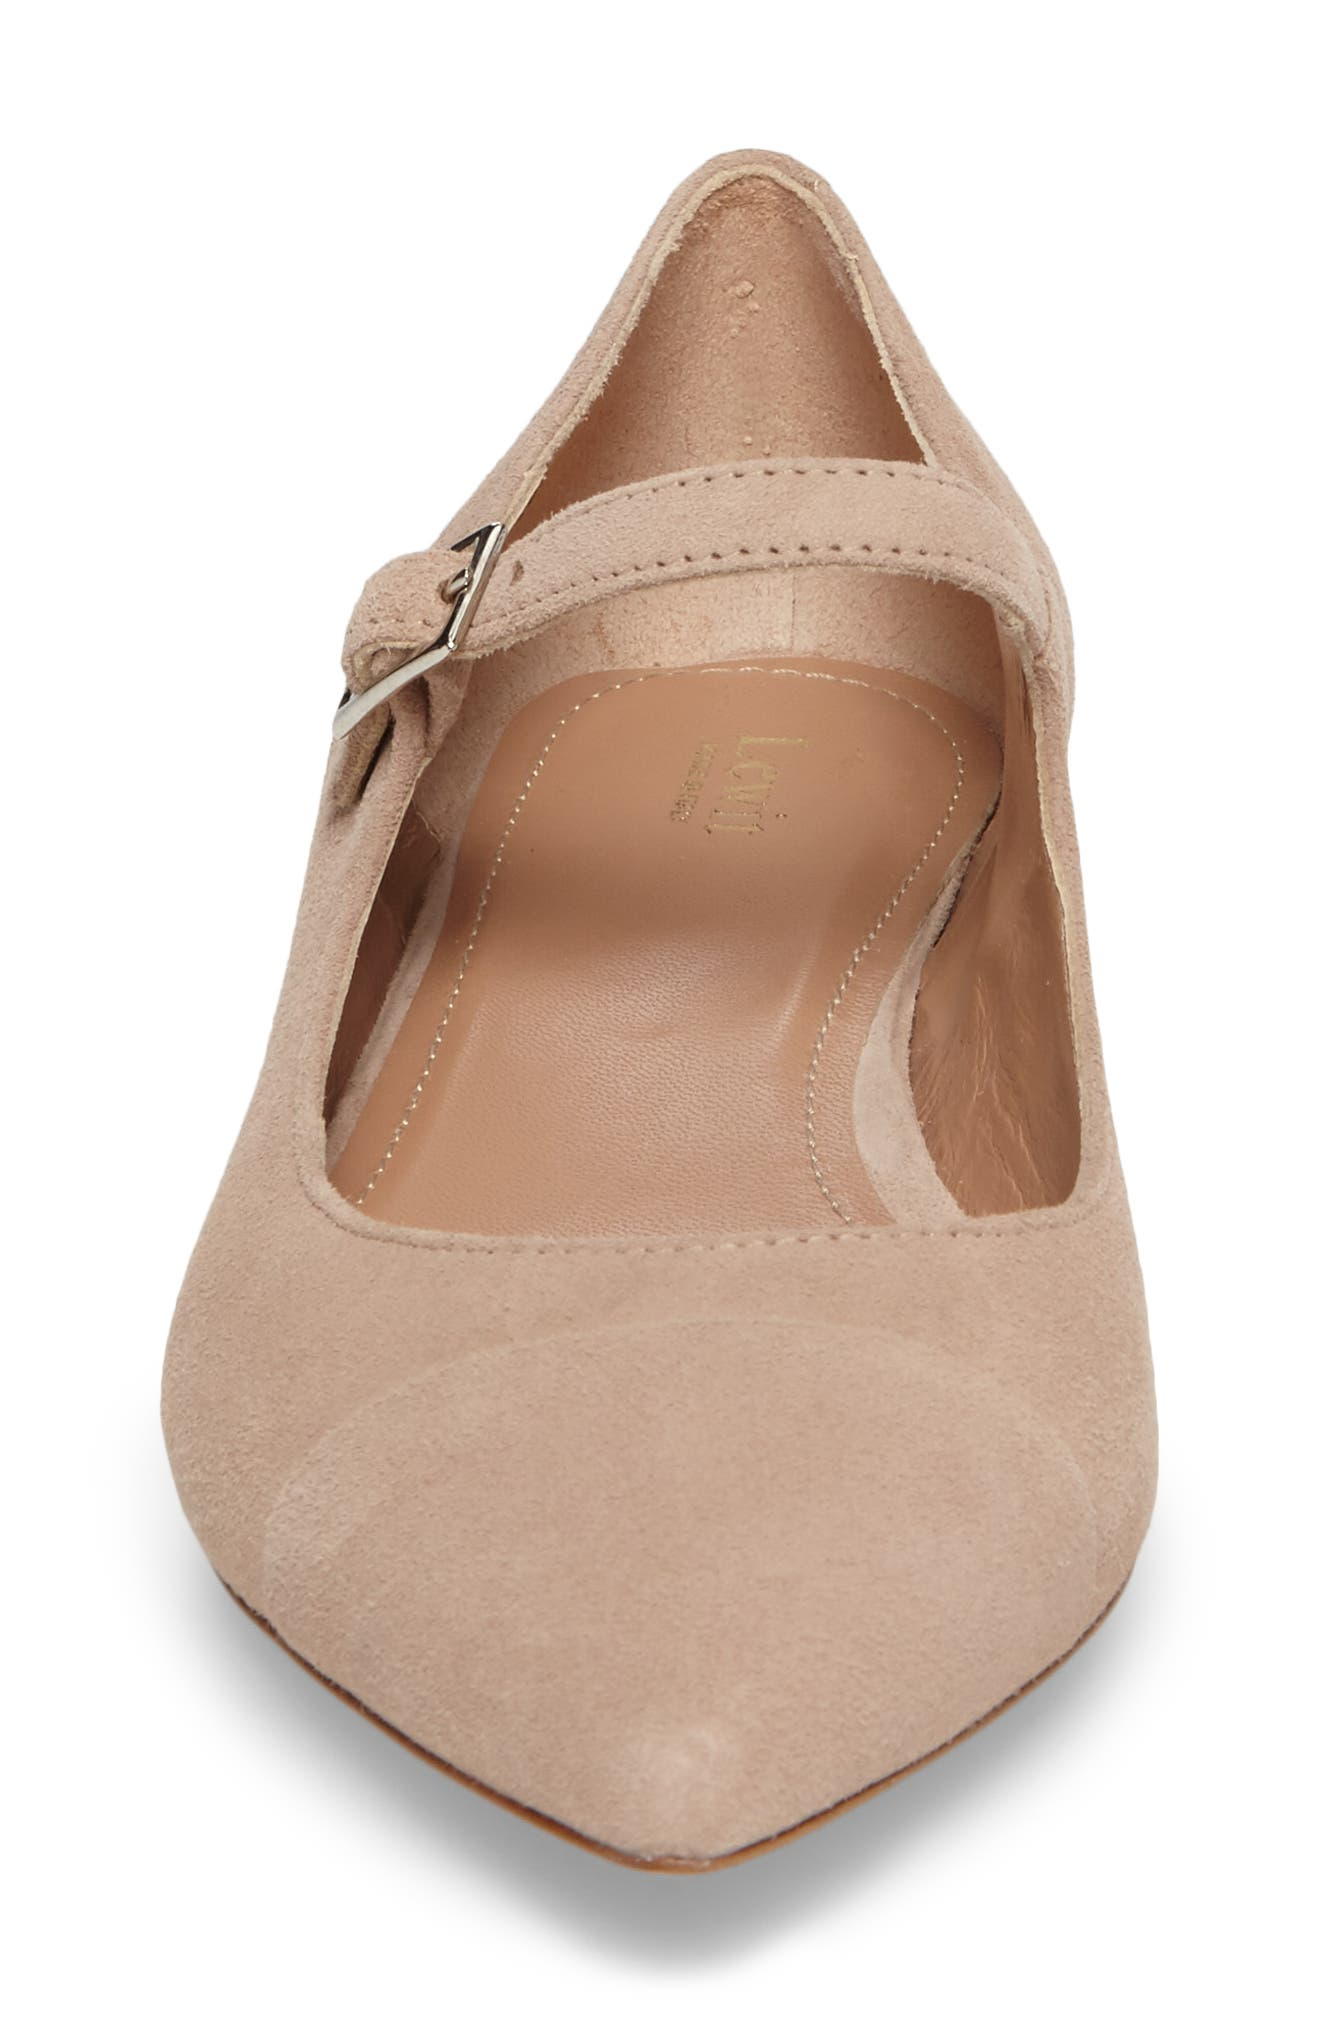 Carmella Mary Jane Flat,                             Alternate thumbnail 4, color,                             Blush Suede